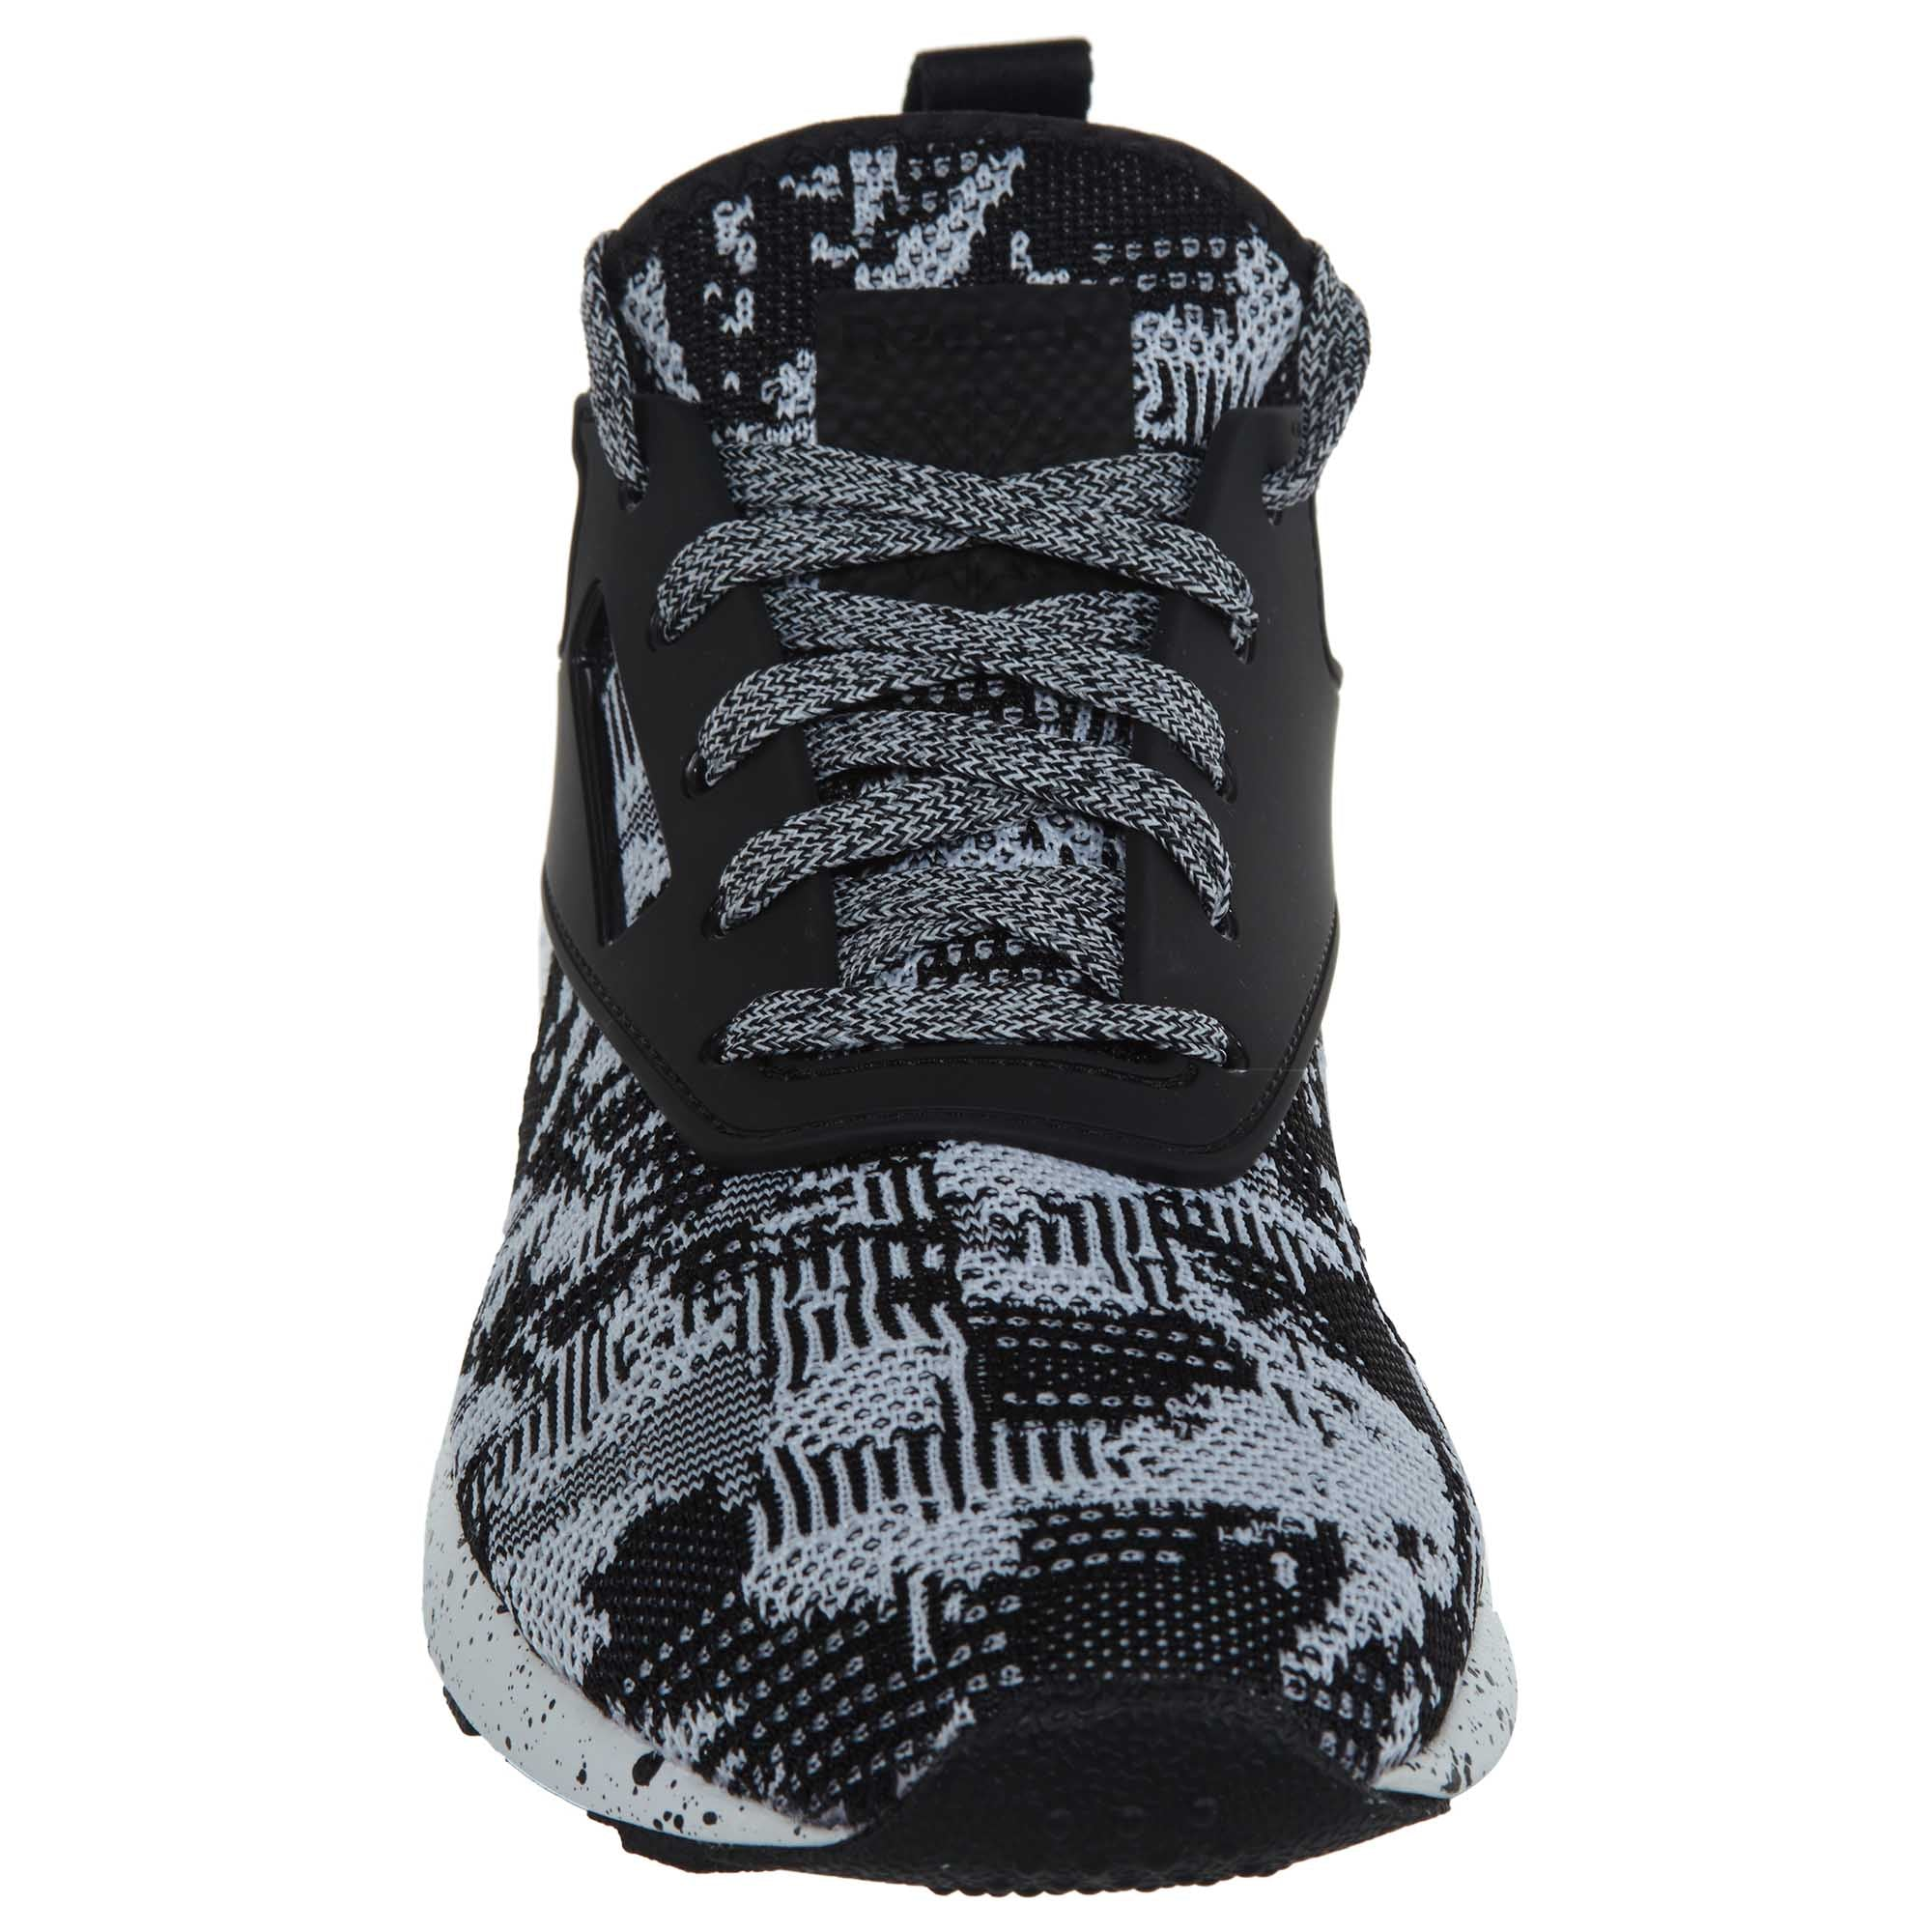 sports shoes 7f537 34bda Reebok Zoku Runner Hh Sneakers Womens Style   Bd6031. REEBOK   Athletic  Shoes   Sneakers